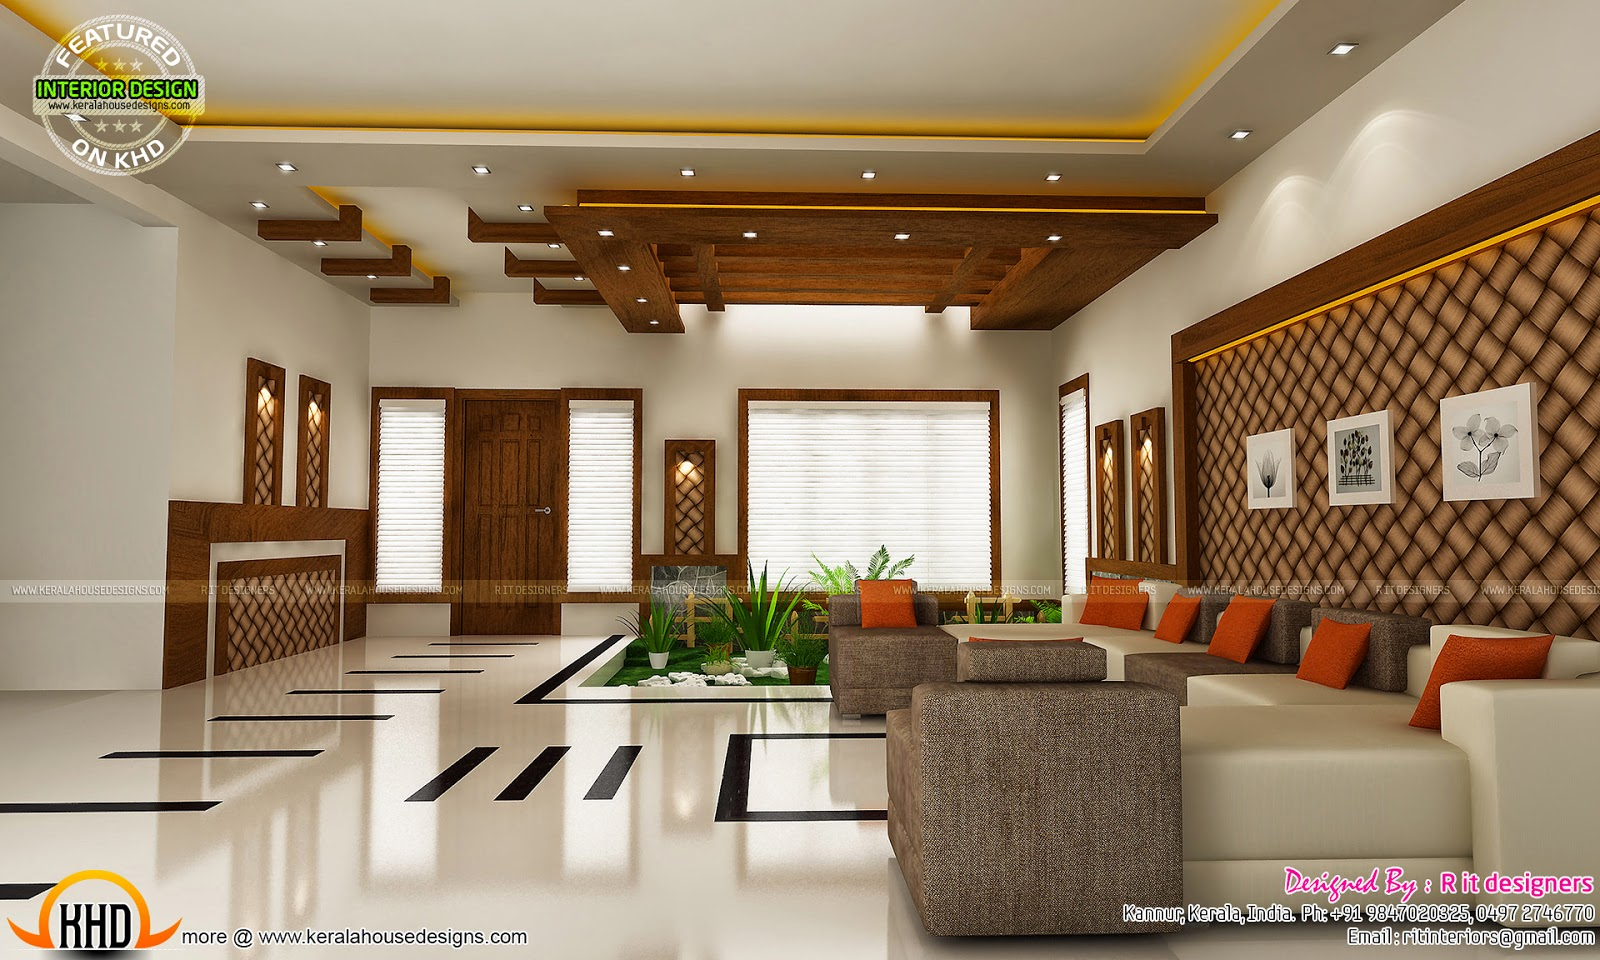 Modern and unique dining kitchen interior kerala home for Kerala model interior designs